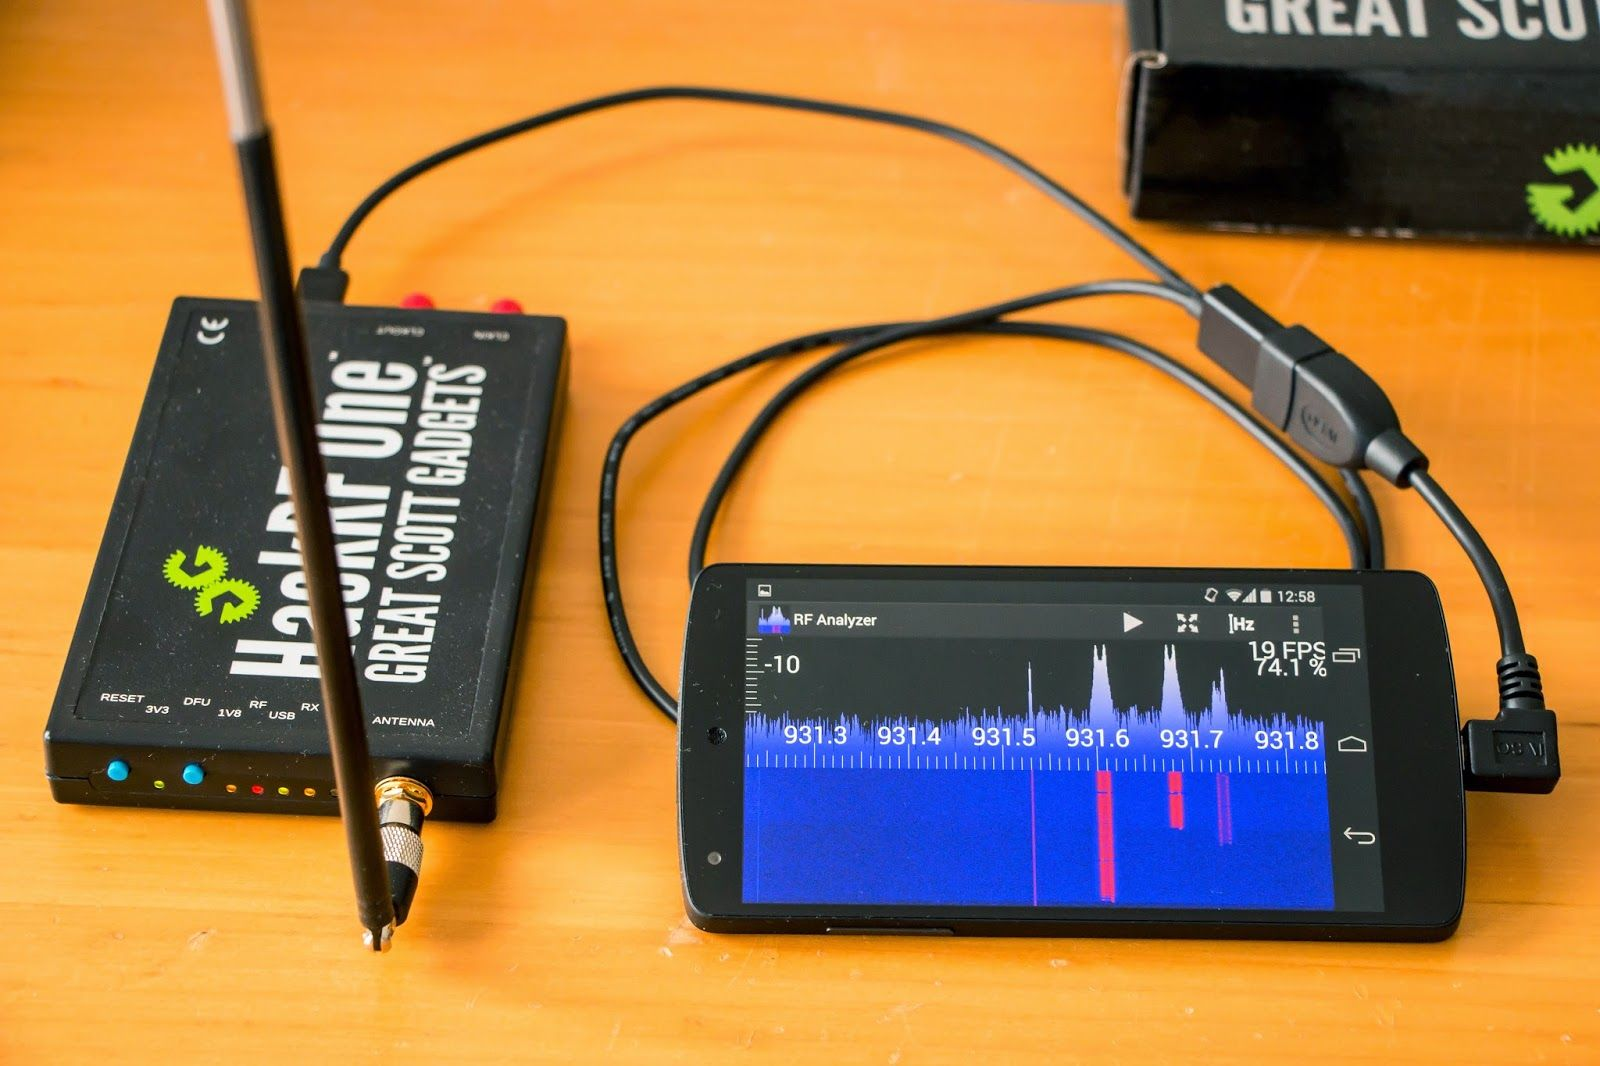 RF Analyzer Explore the frequency spectrum with the